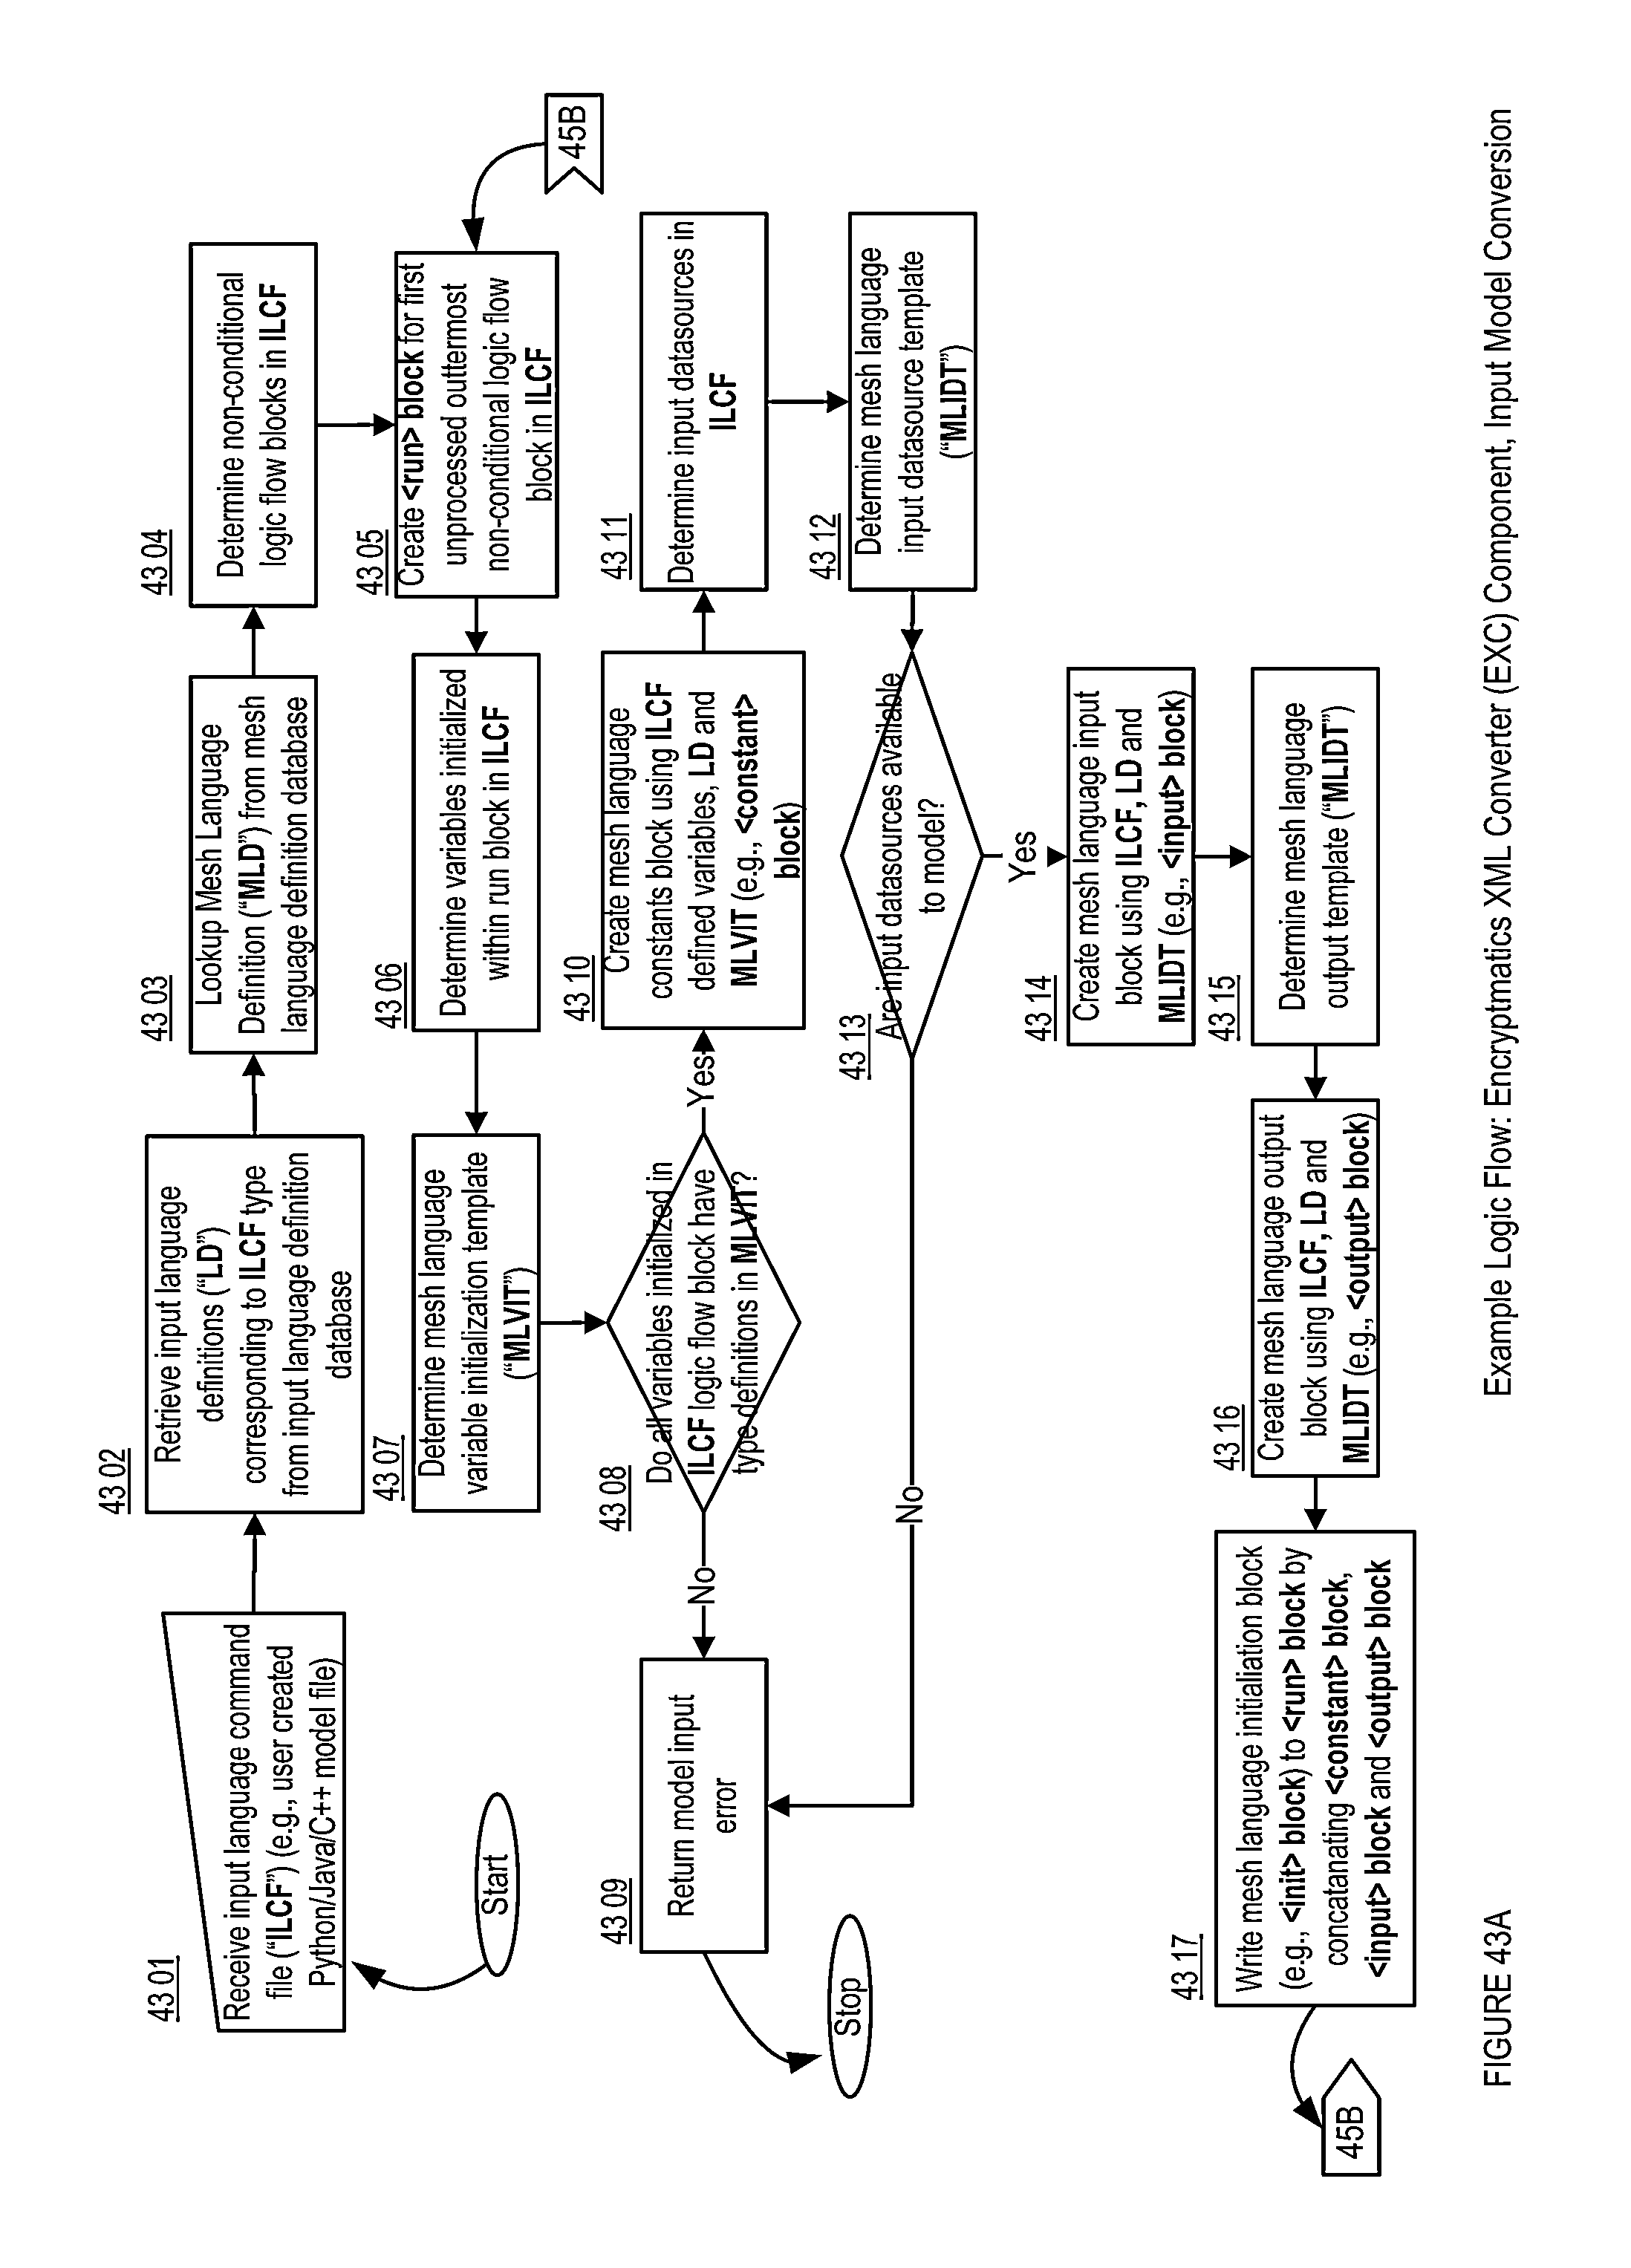 Patent Us 9830328 B2 On The Block Diagram Right Click Physical Channel Constant And 0 Petitions